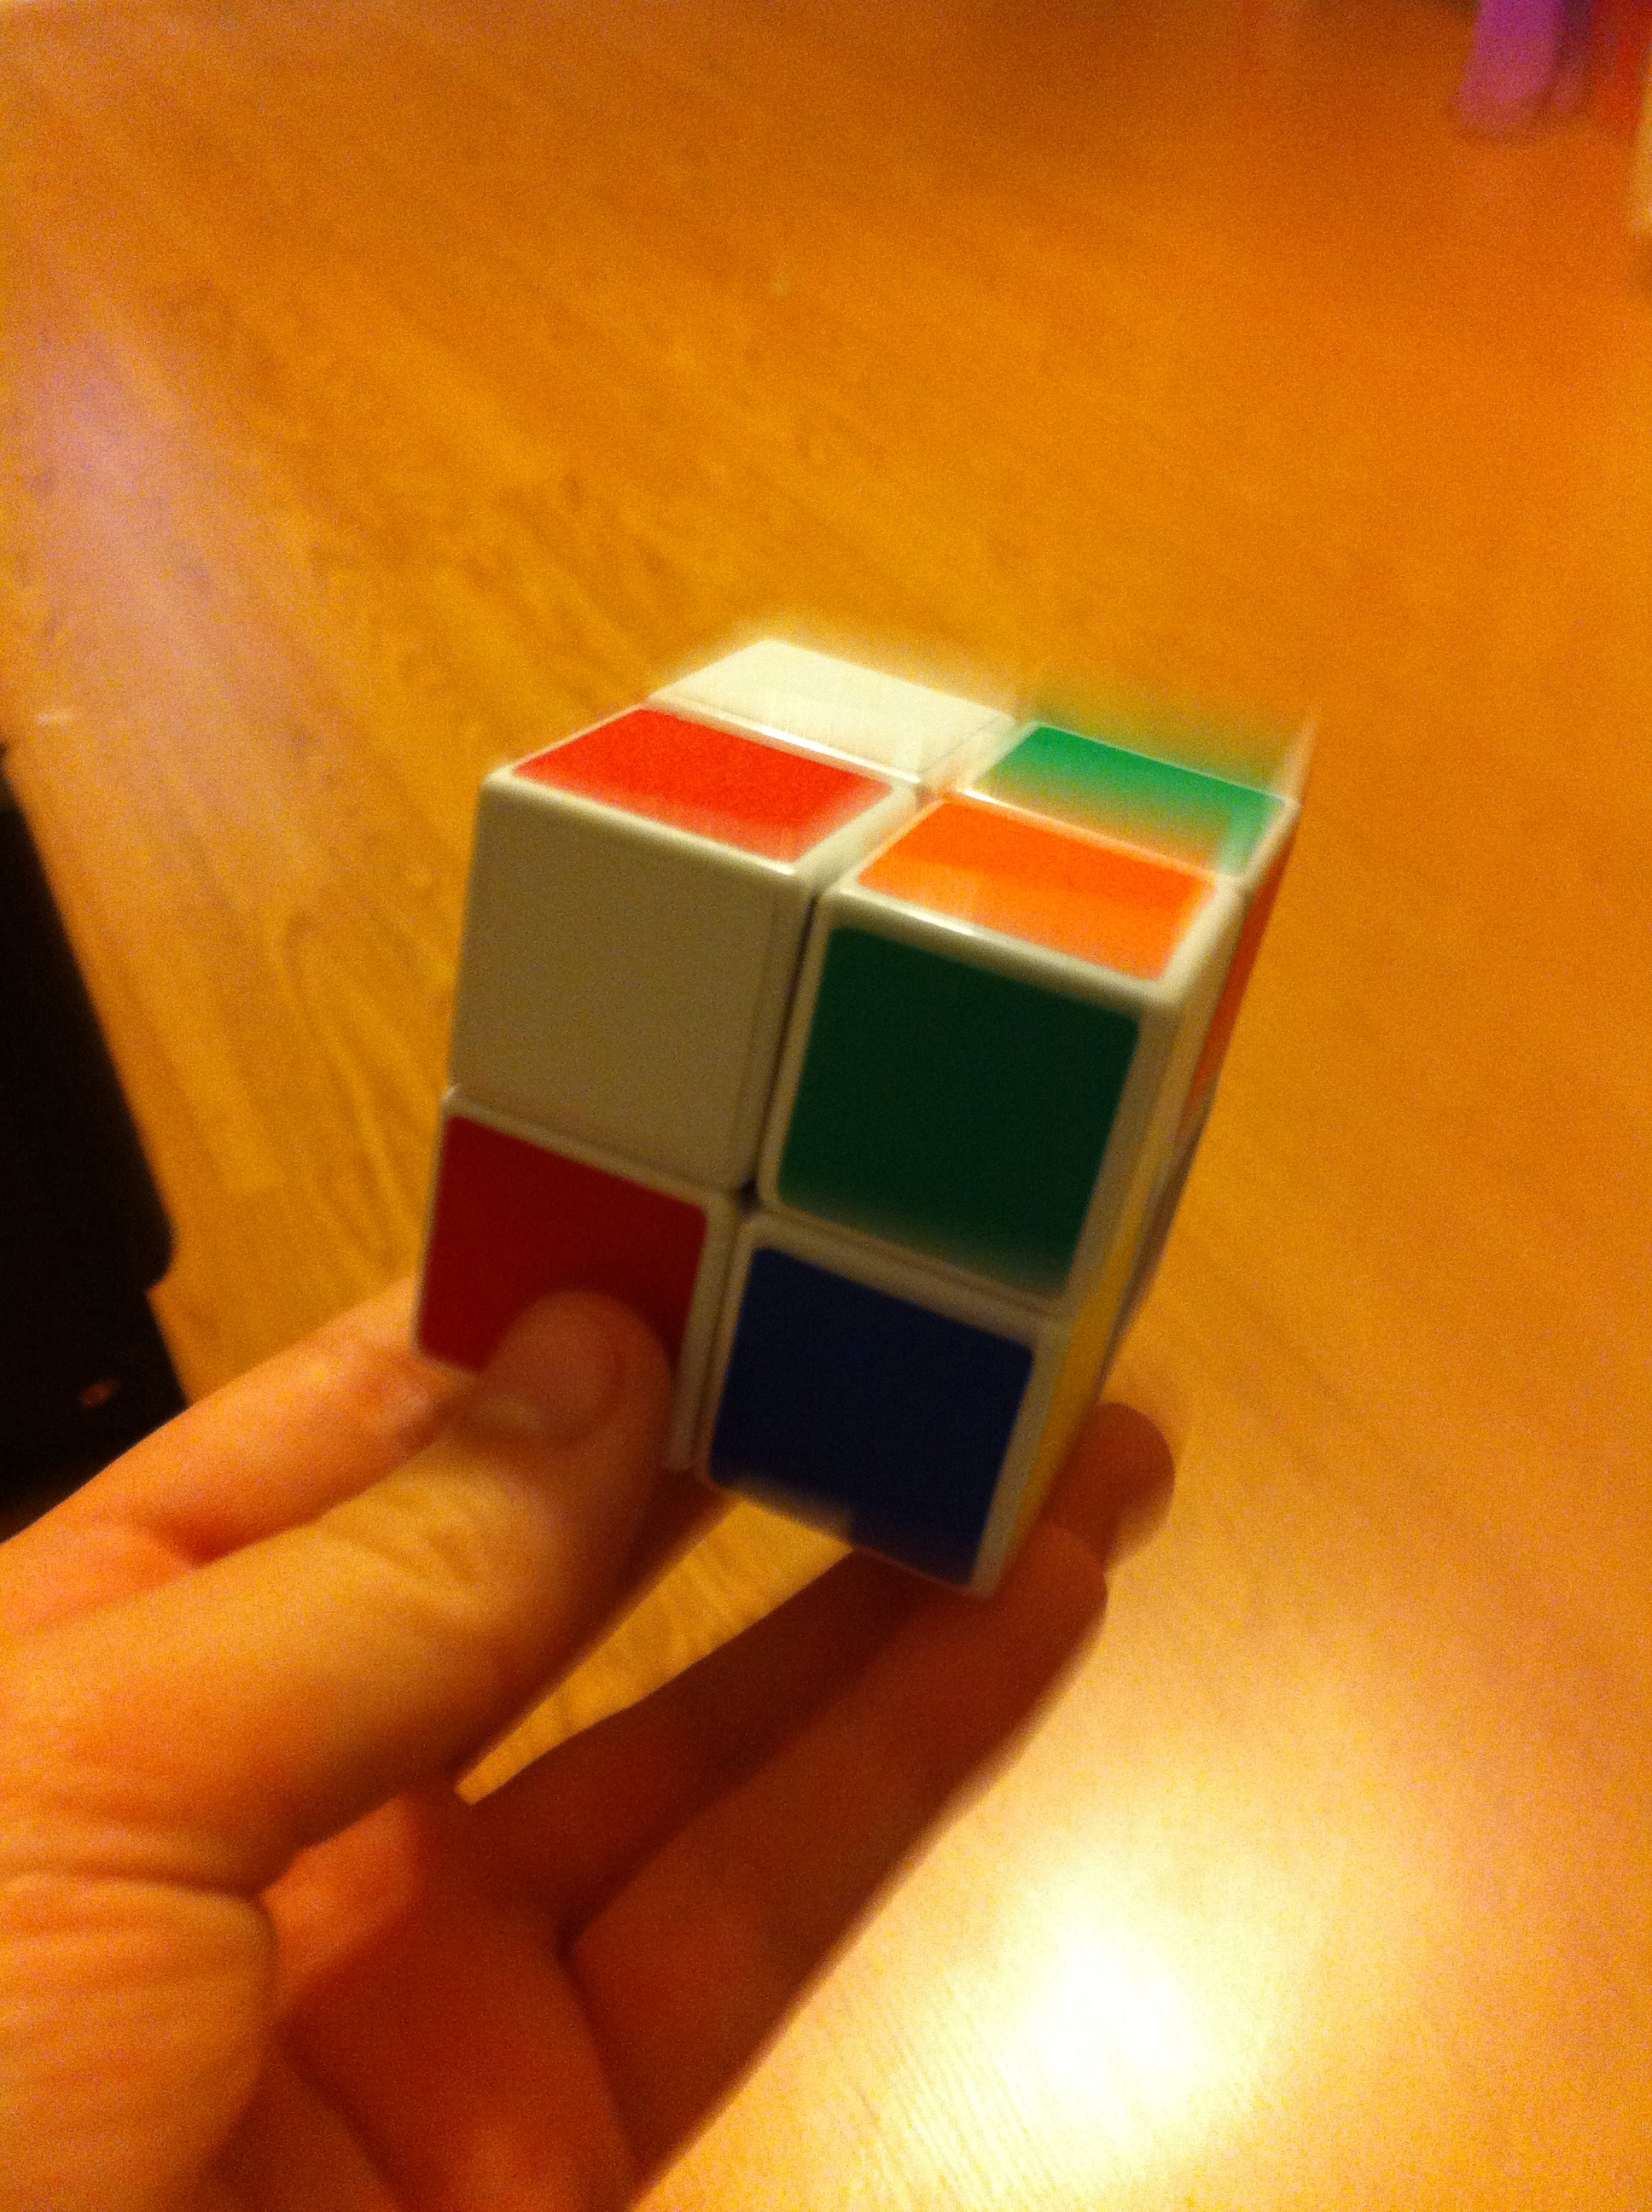 How to Solve a 2 By 2 Rubix Cube